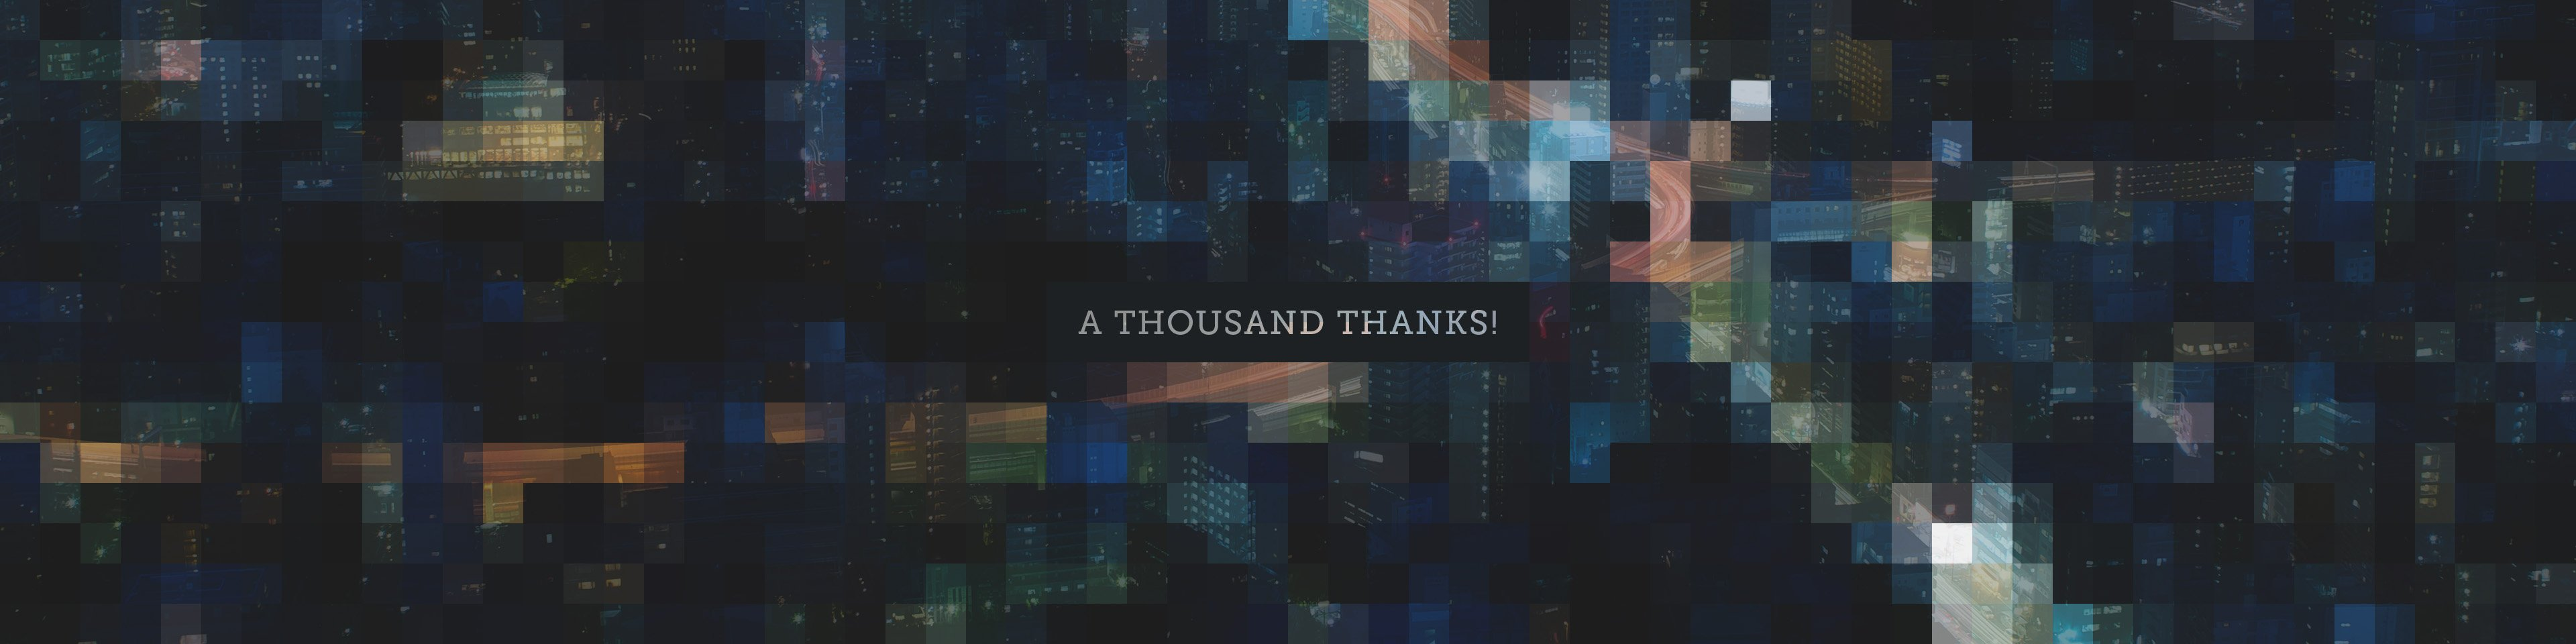 A Thousand Thanks